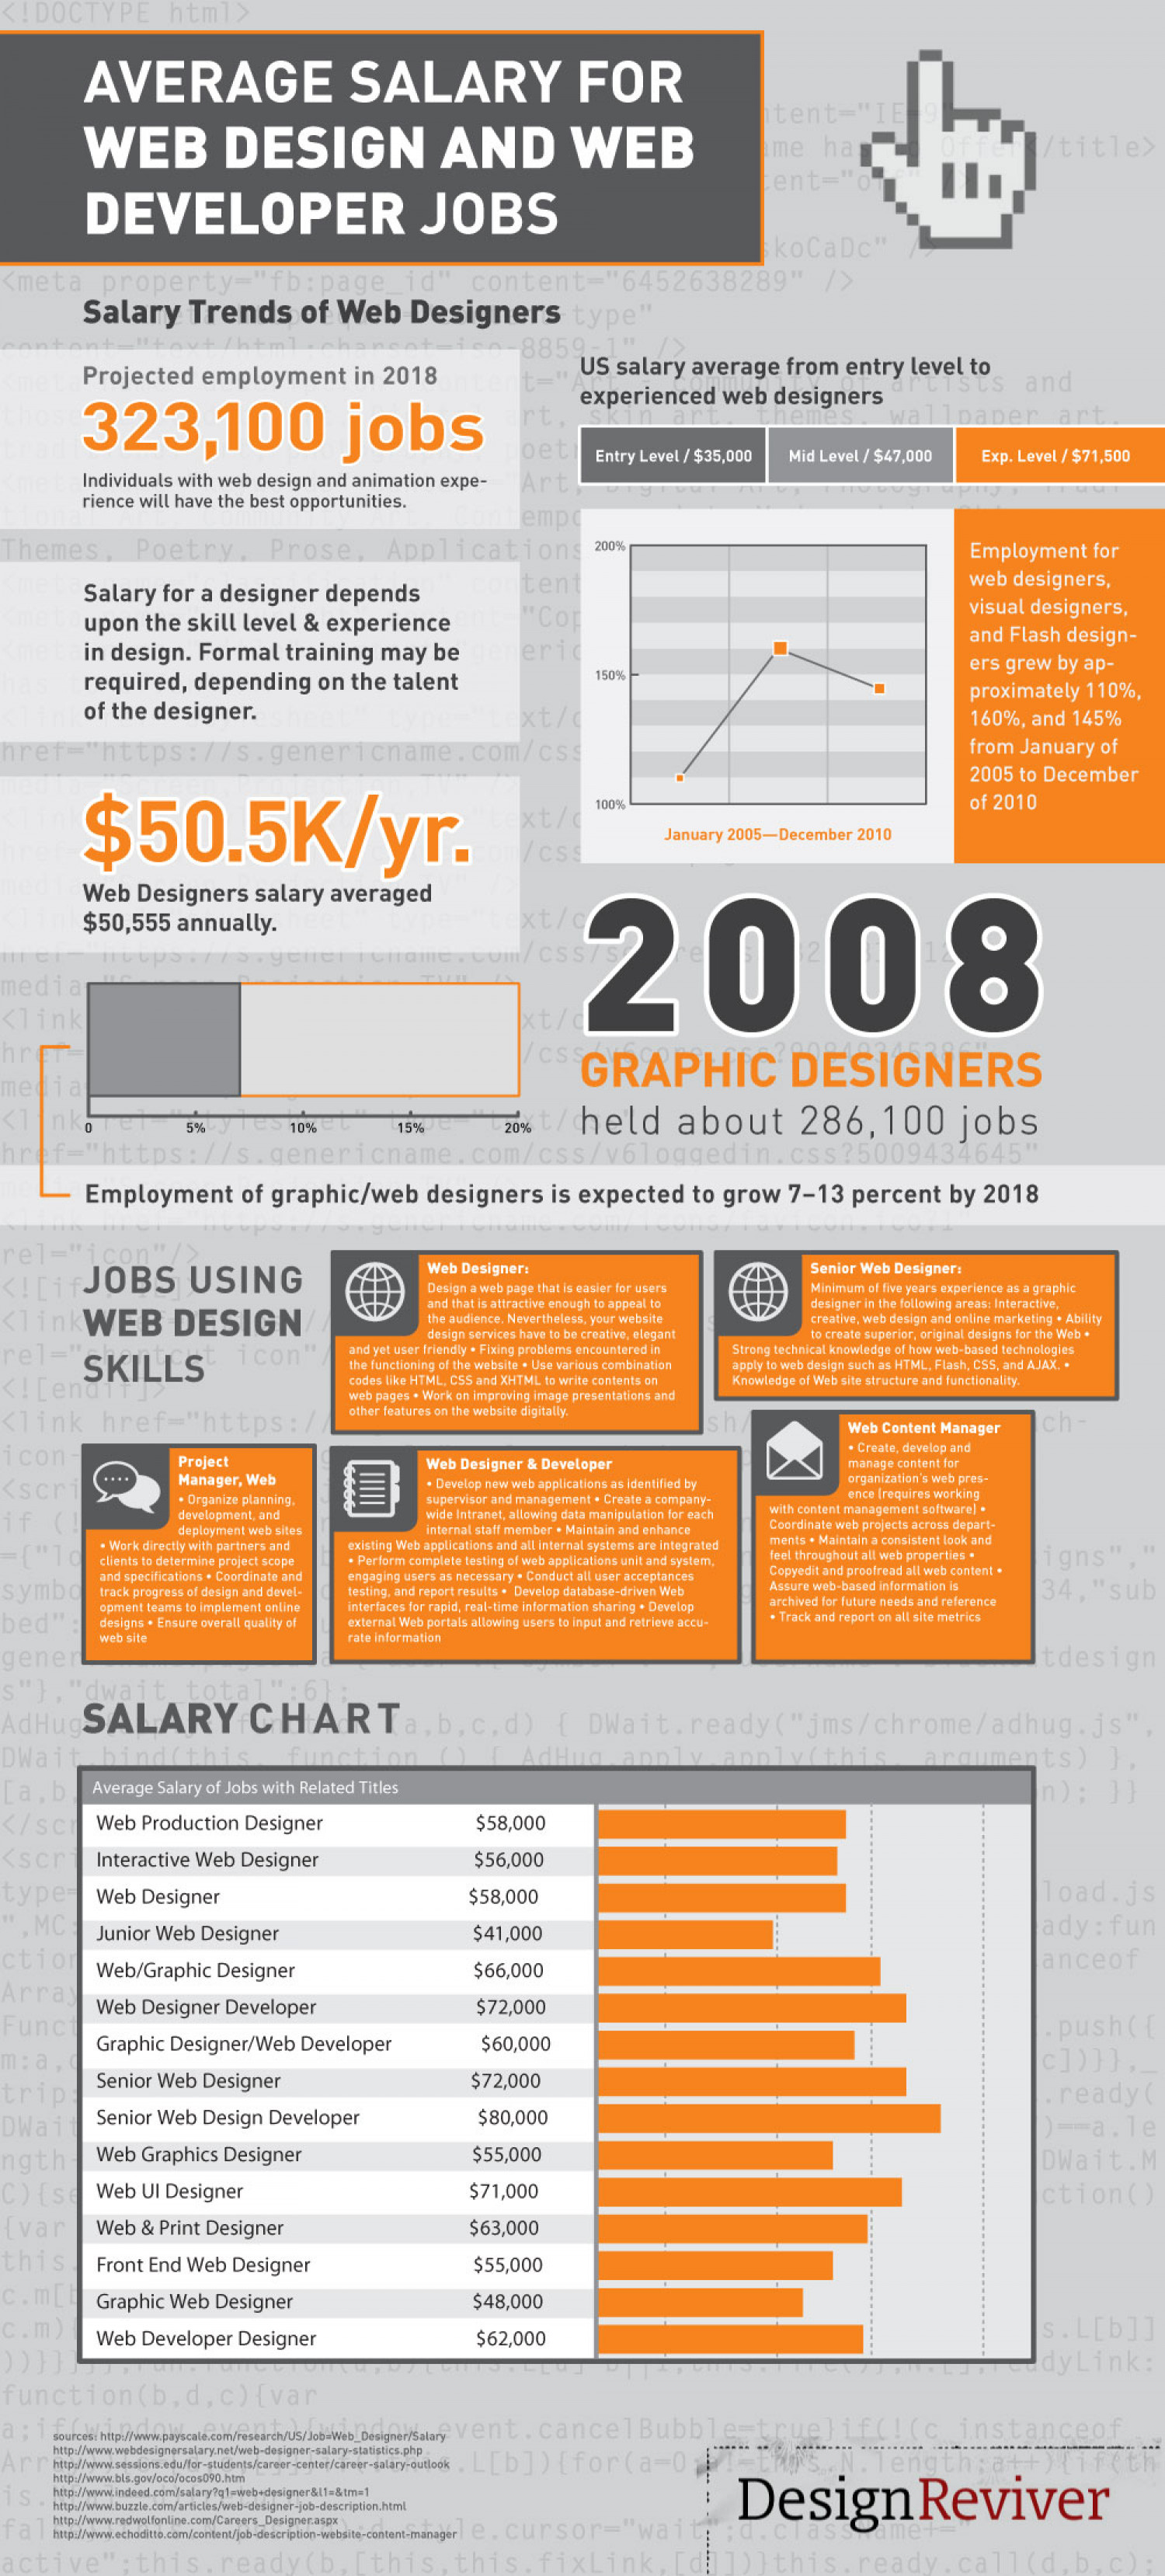 Average Salary for Web Design and Web Developer Jobs | Visual.ly